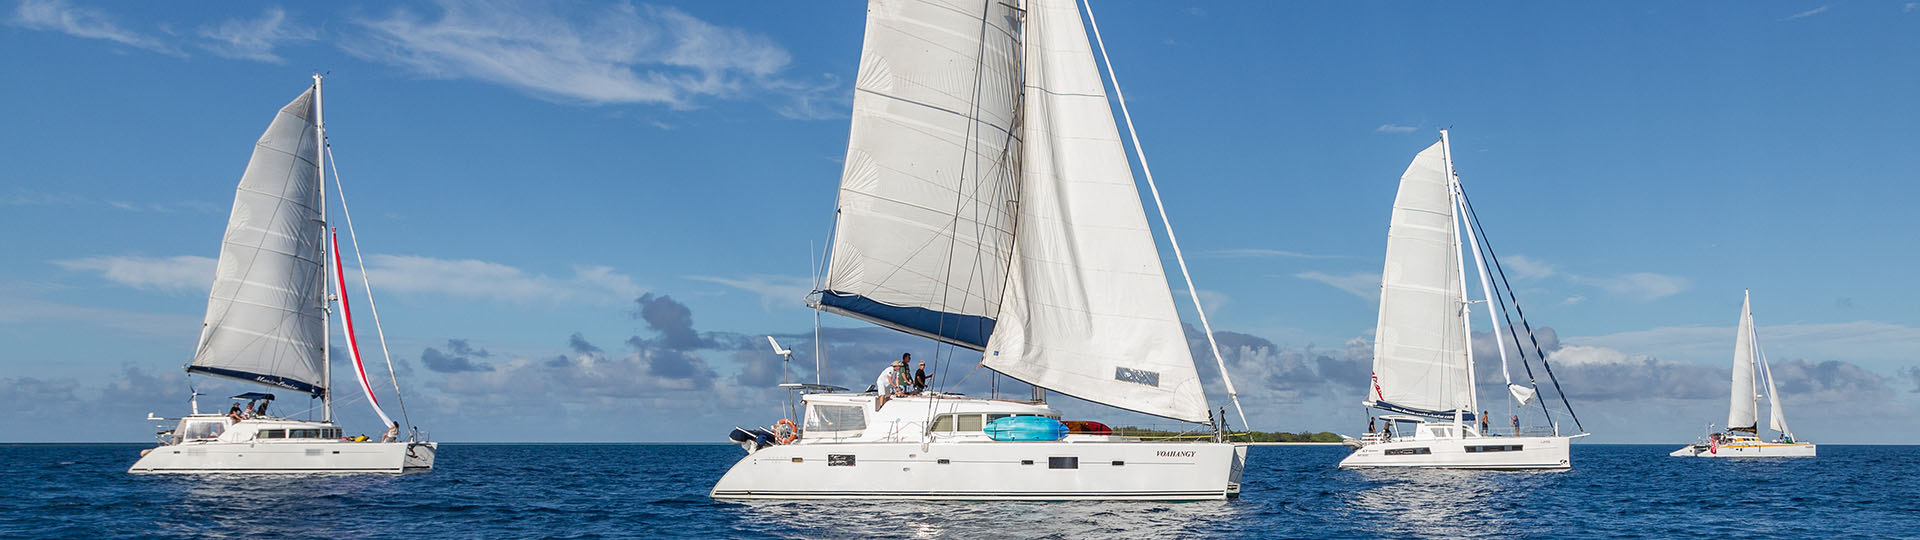 Trip in catamaran in New Caledonia